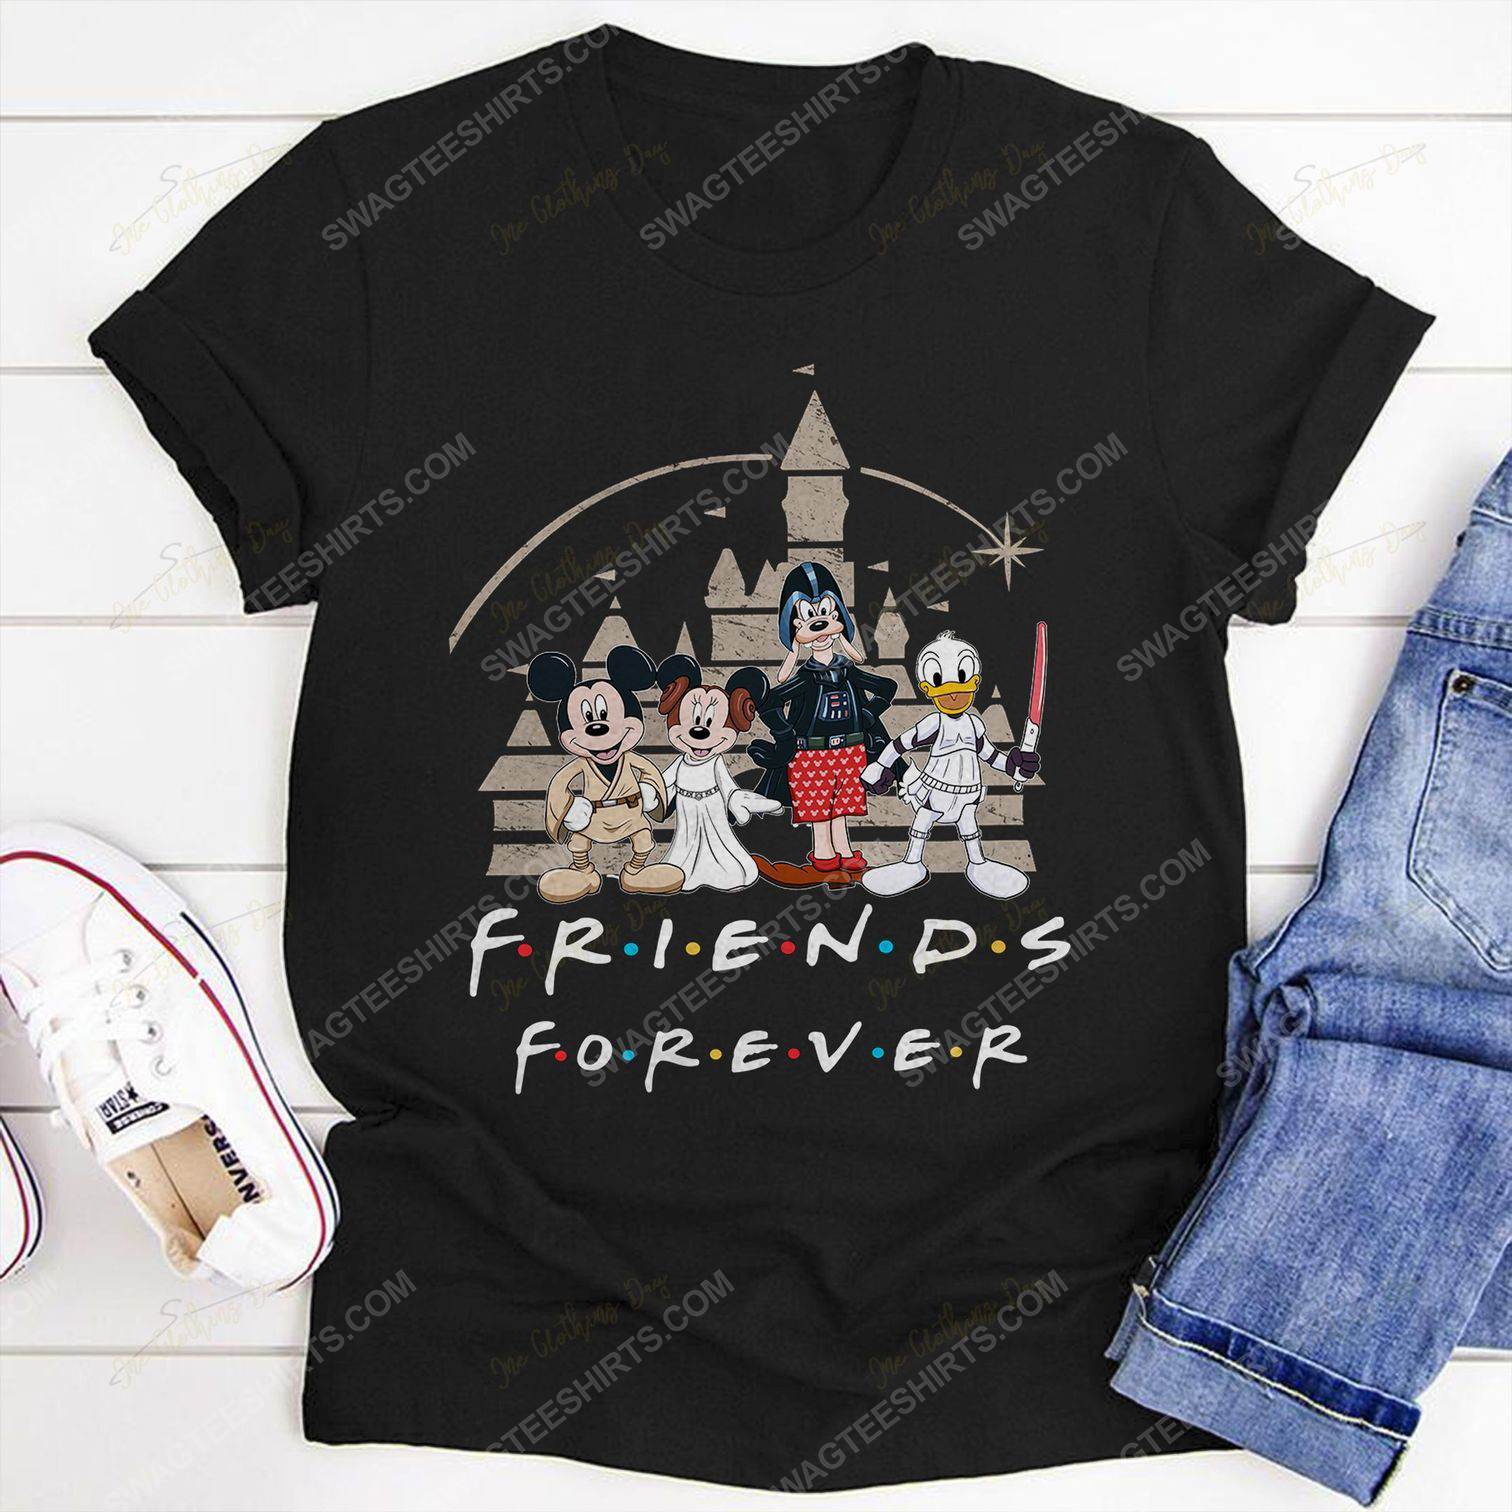 Friends tv show mickey mouse and friends shirt 3(1)